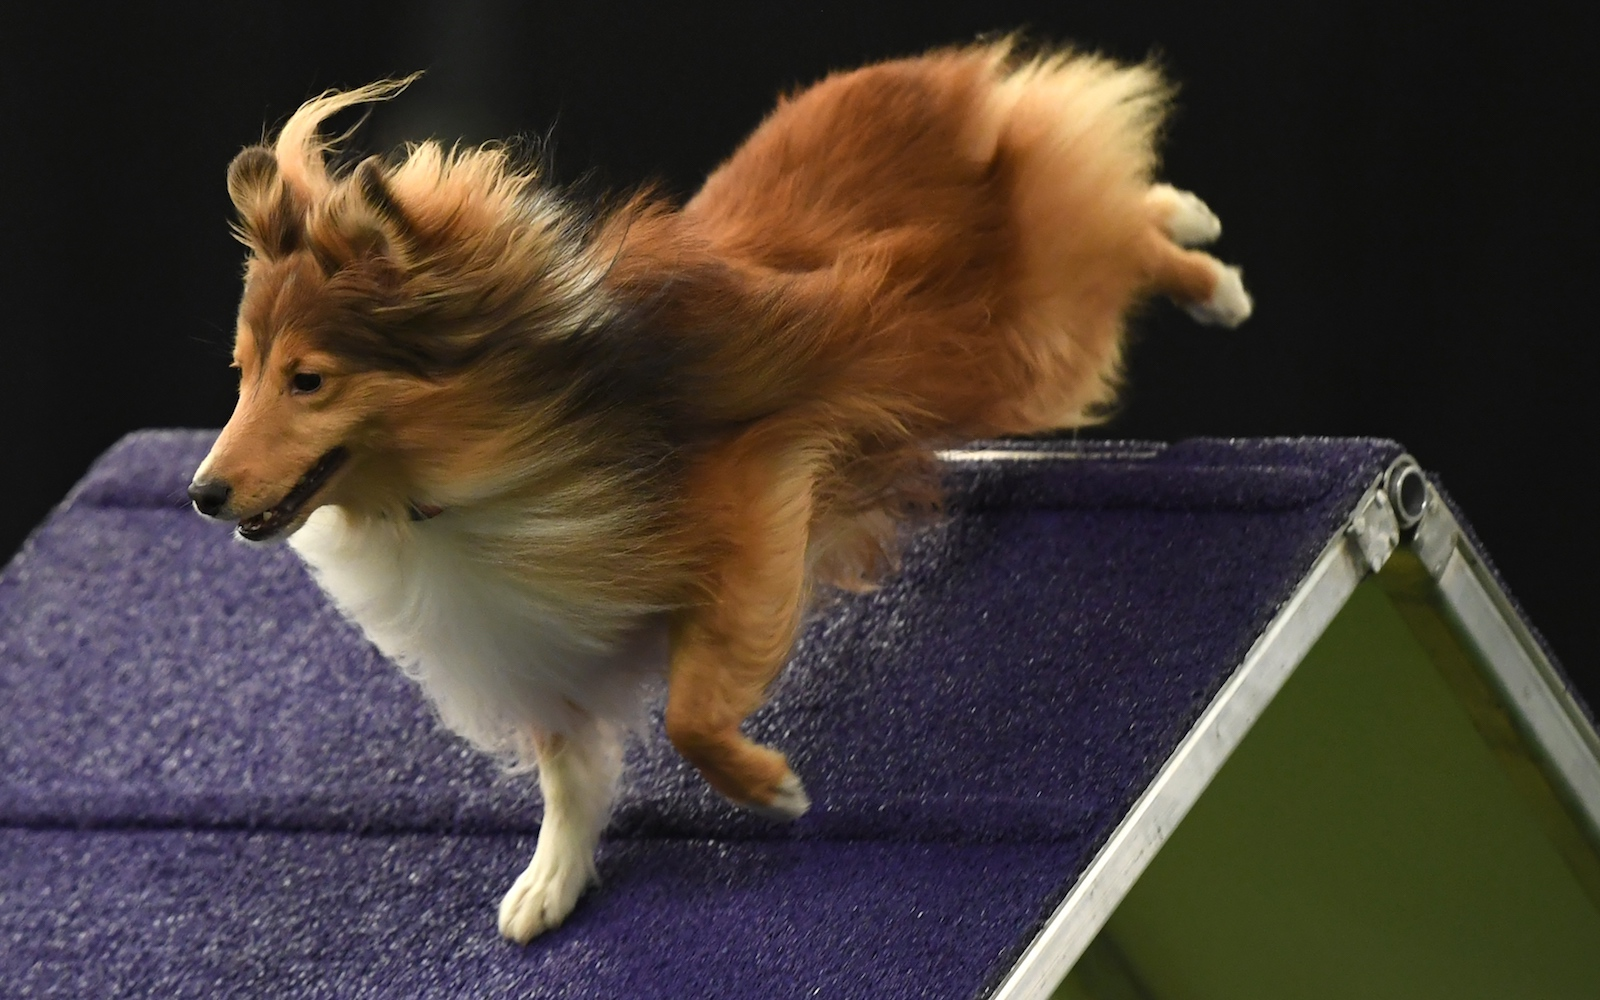 westminster dog show agility obstacle course 2018